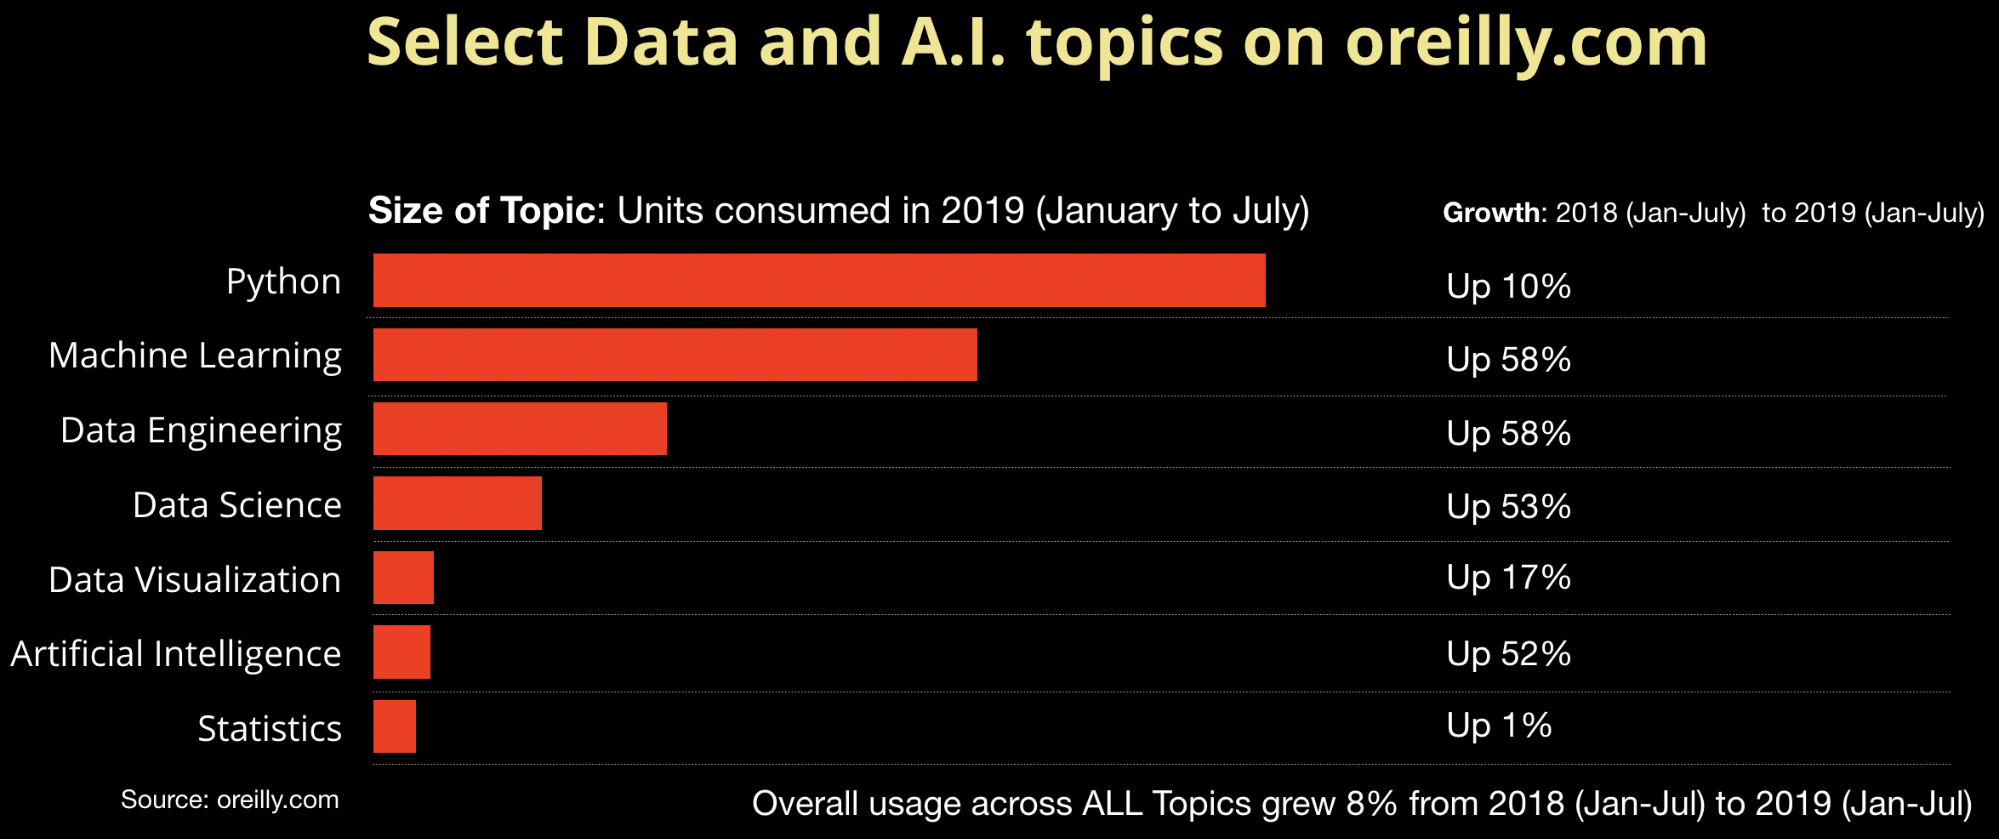 AI and Data topics on oreilly.com